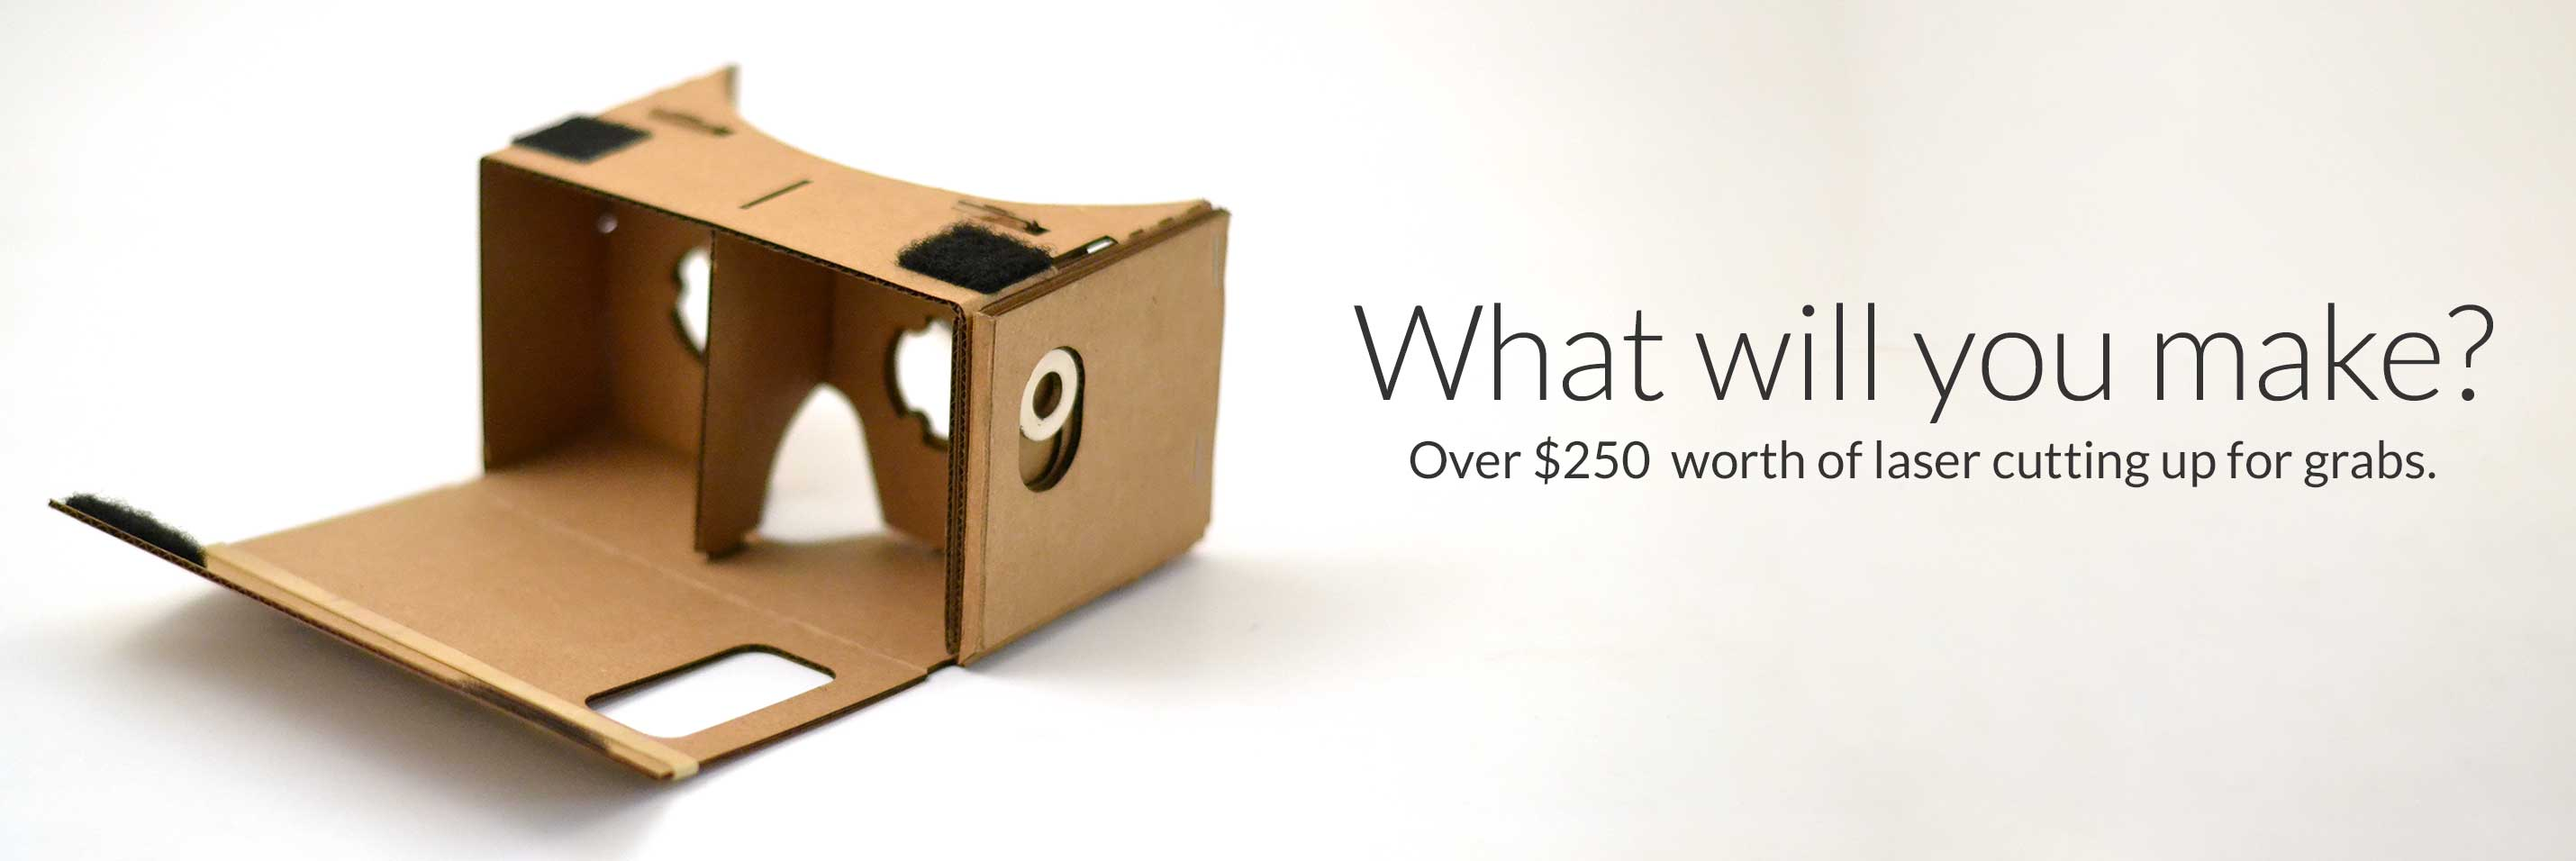 Share Your Google Cardboard Design Idea, Win Your Share of $250 ...